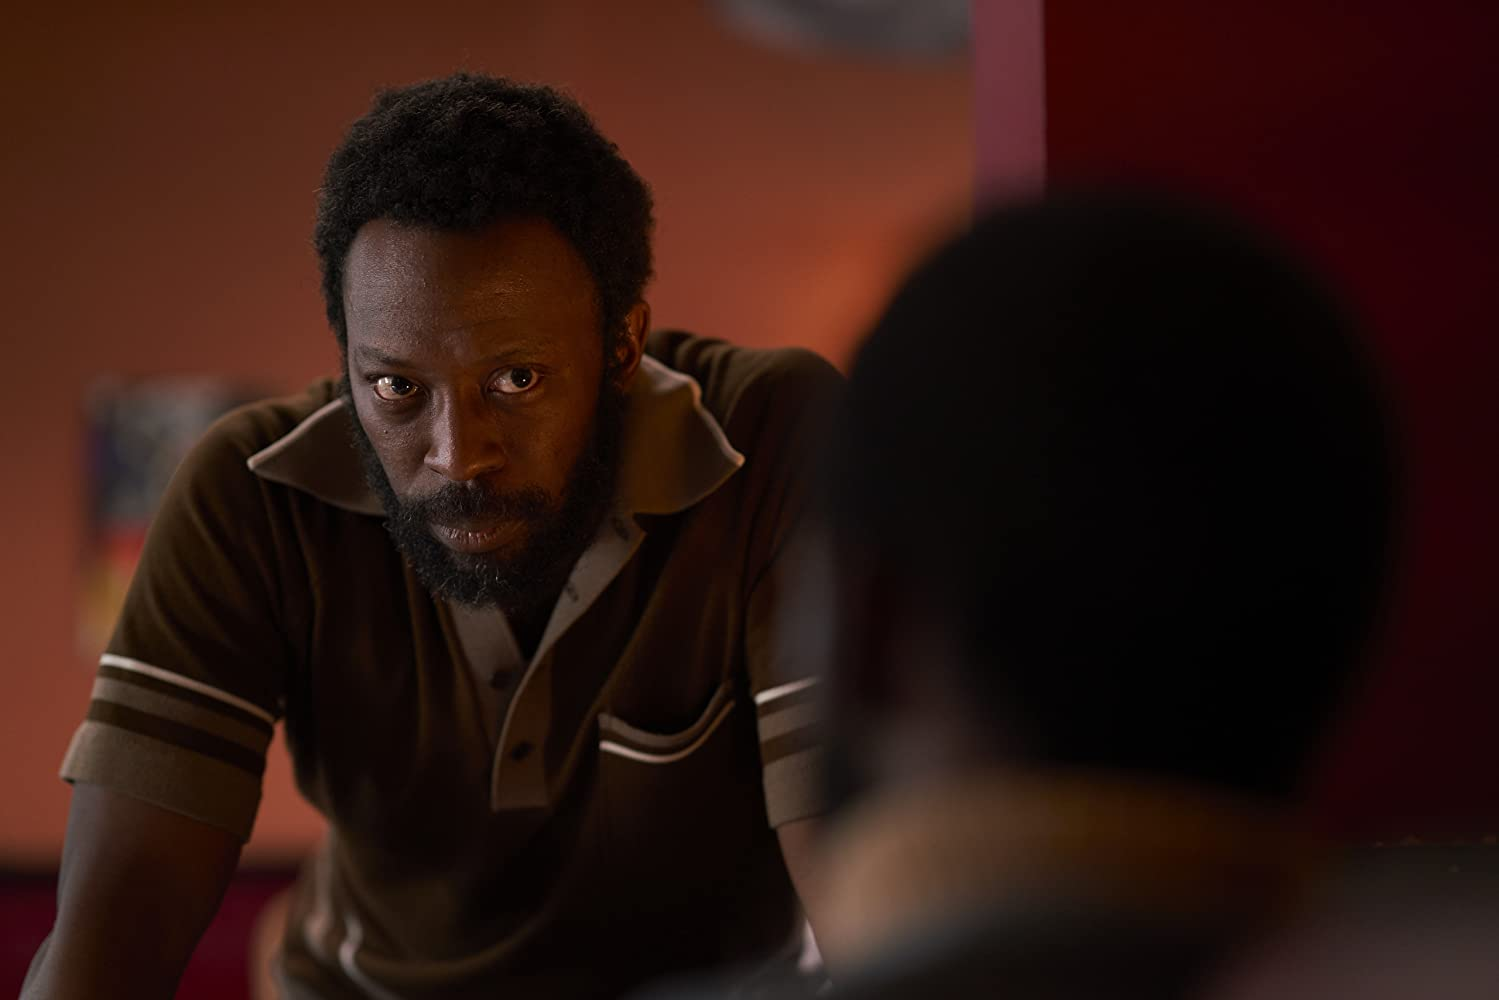 In a red-painted room, a bearded man wearing a brown polo shirt assumes a serious facial expression while leaning forward on a table and listening to another person who is obscured in the foreground.